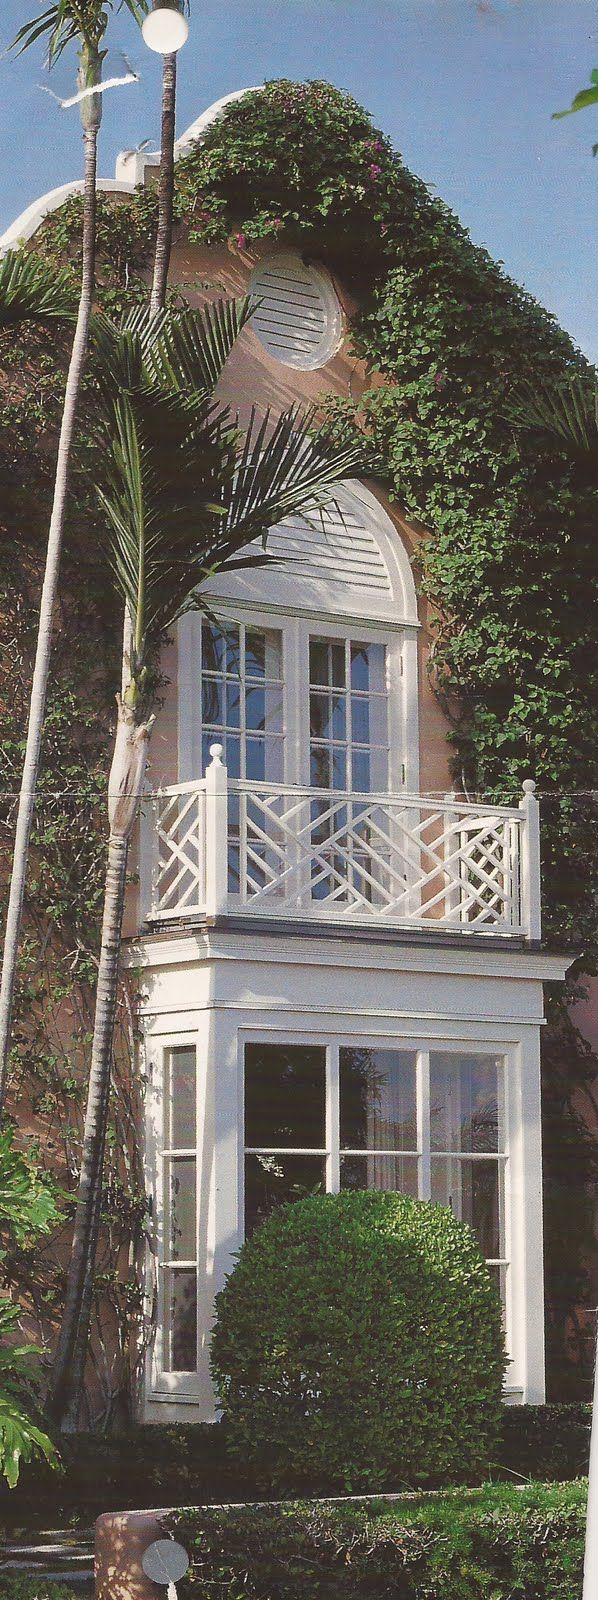 Staircase window exterior design  belclaire house the suzeday files  balboa upstairs deck